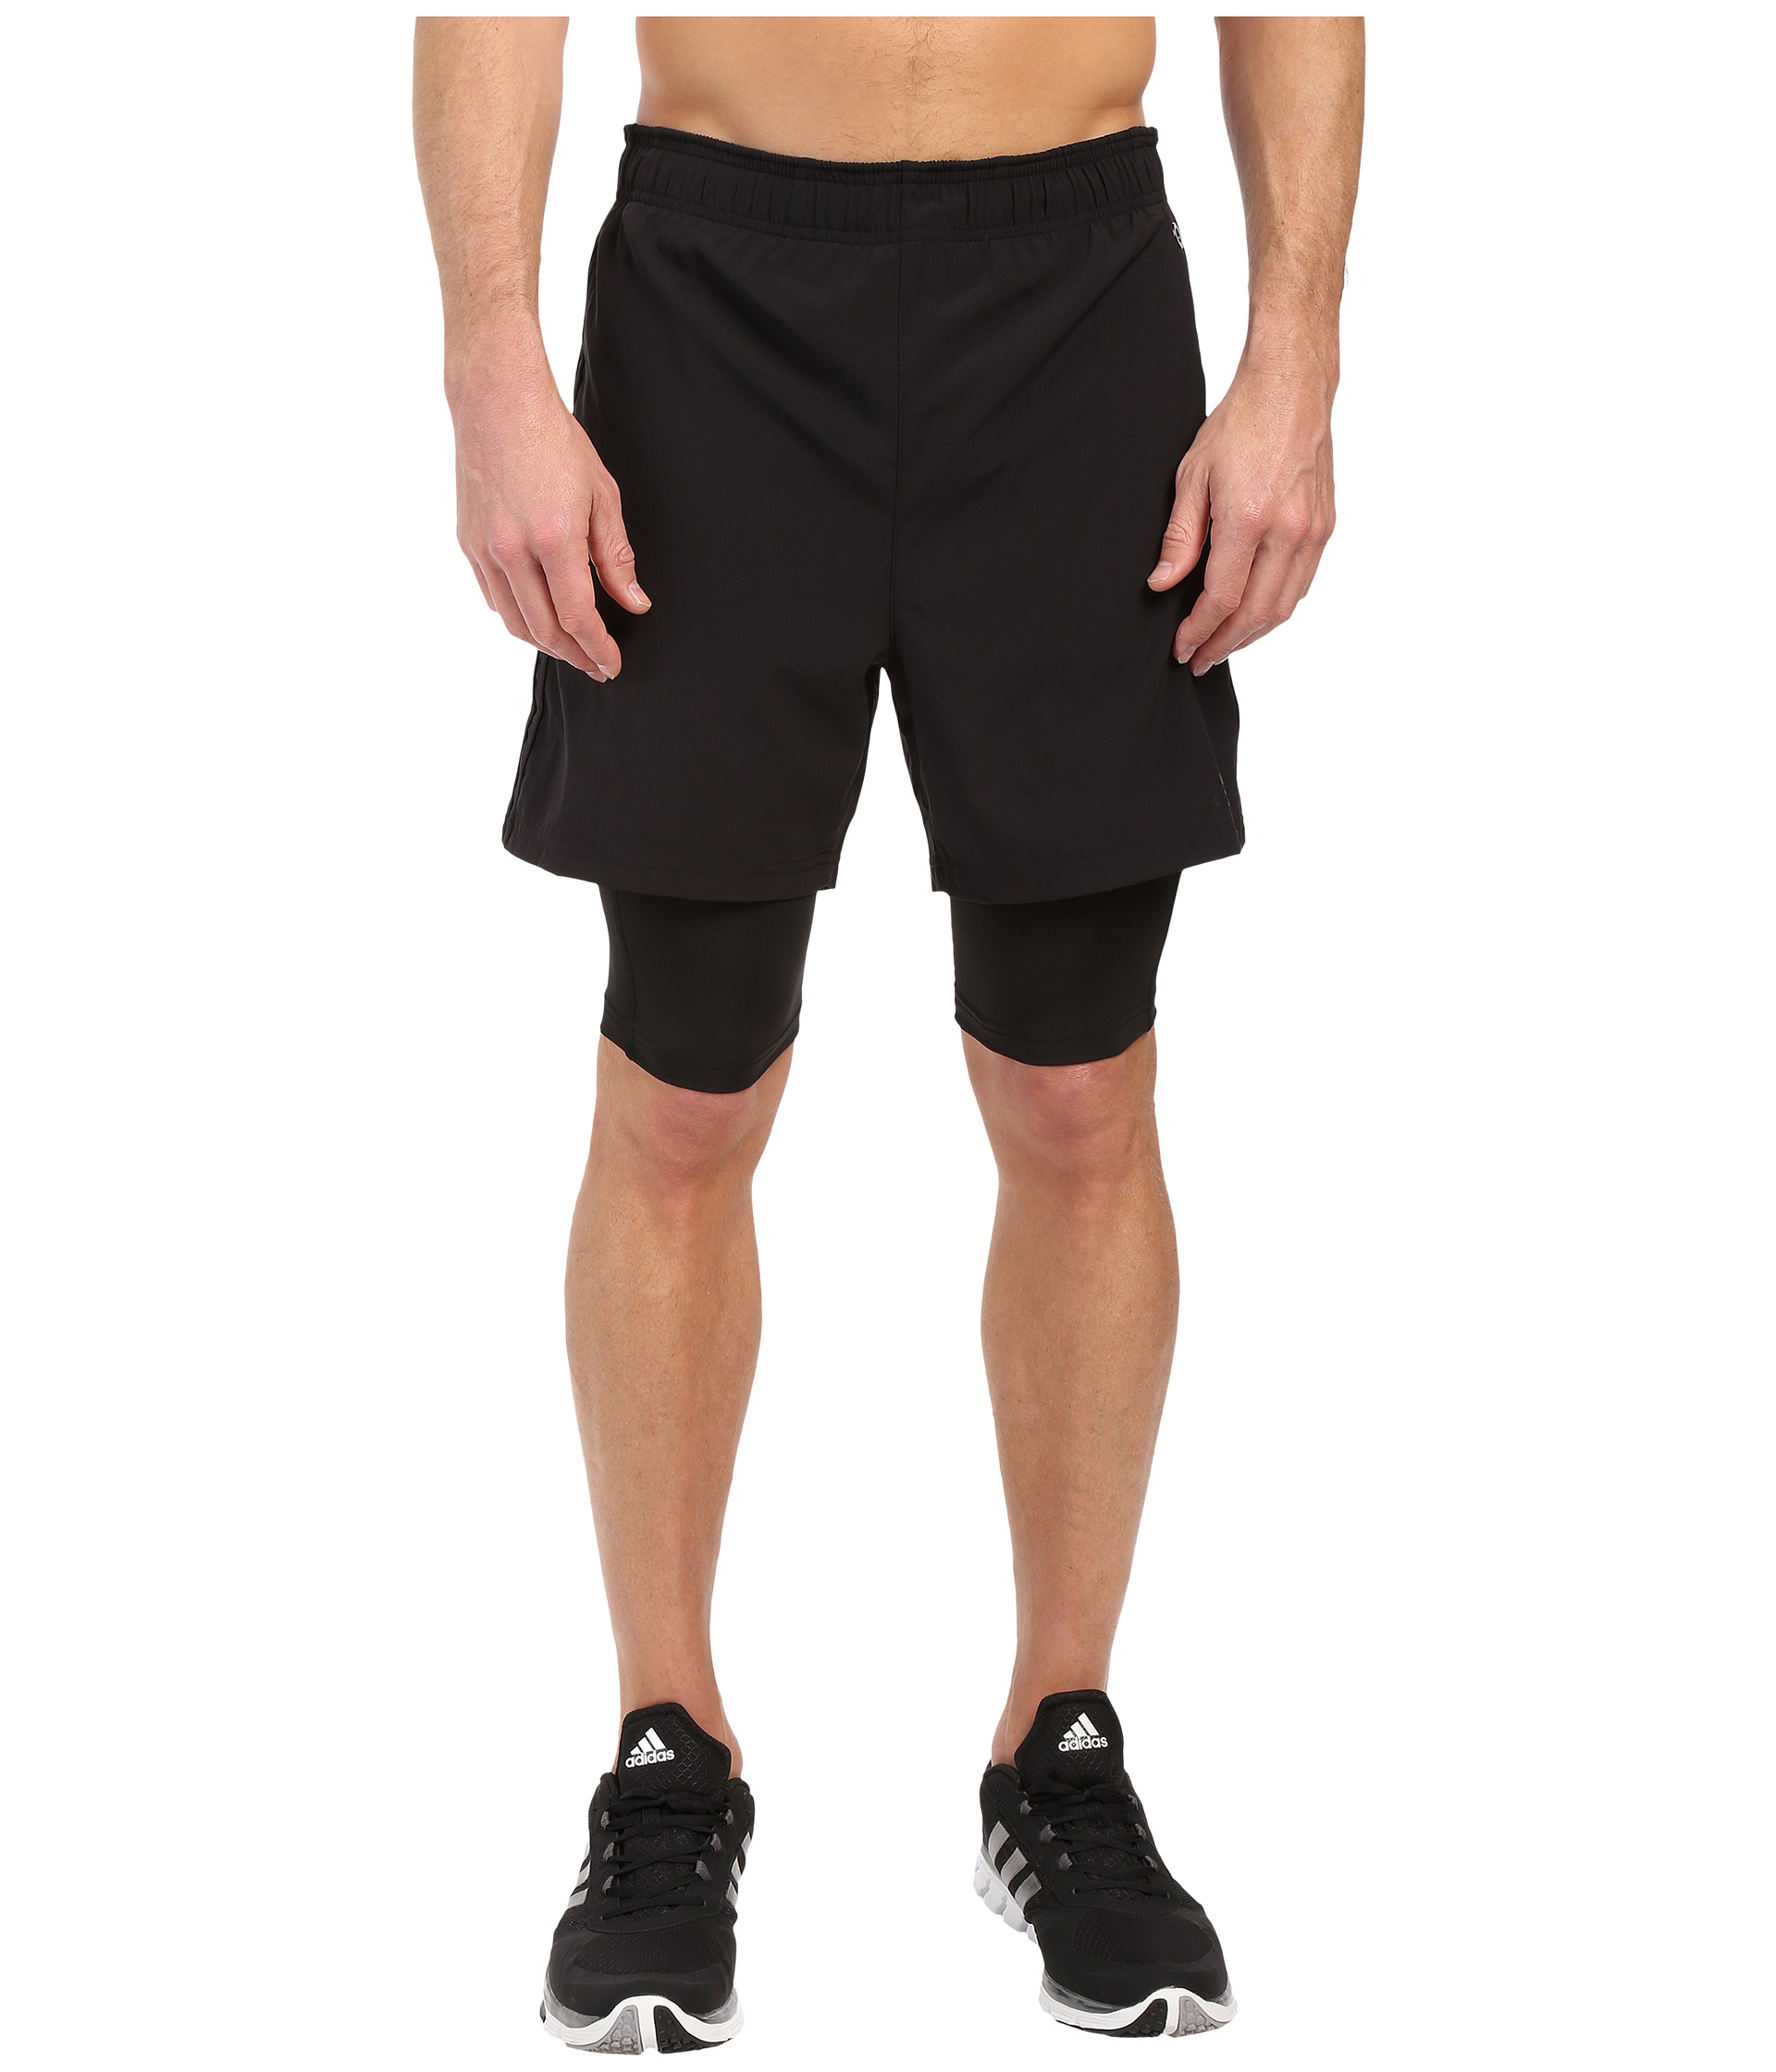 adidas 2 in 1 shorts. gallery adidas 2 in 1 shorts lyst